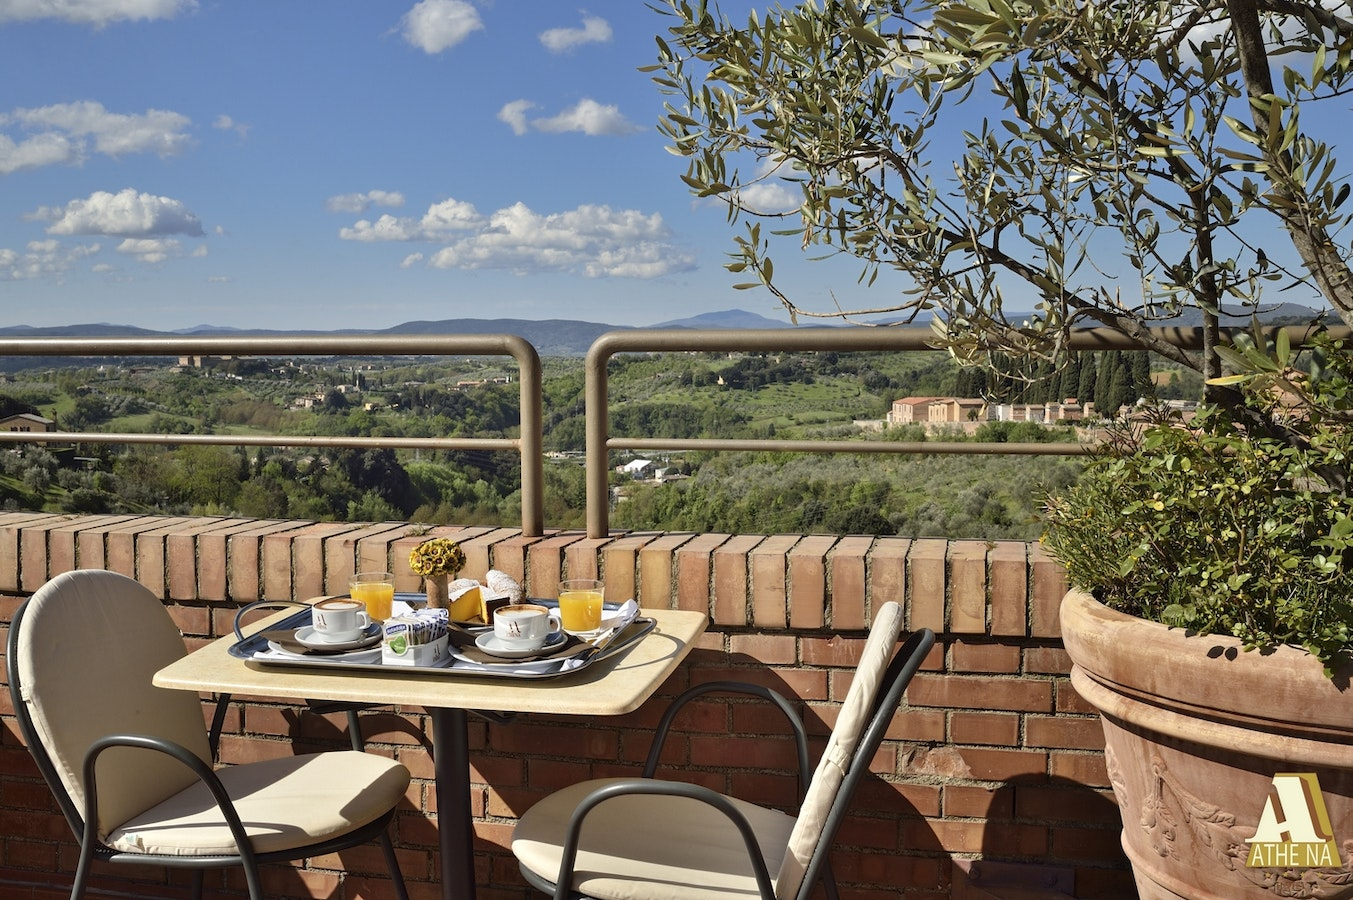 Family Run Hotel Athena Within Walking Distance Of Siena